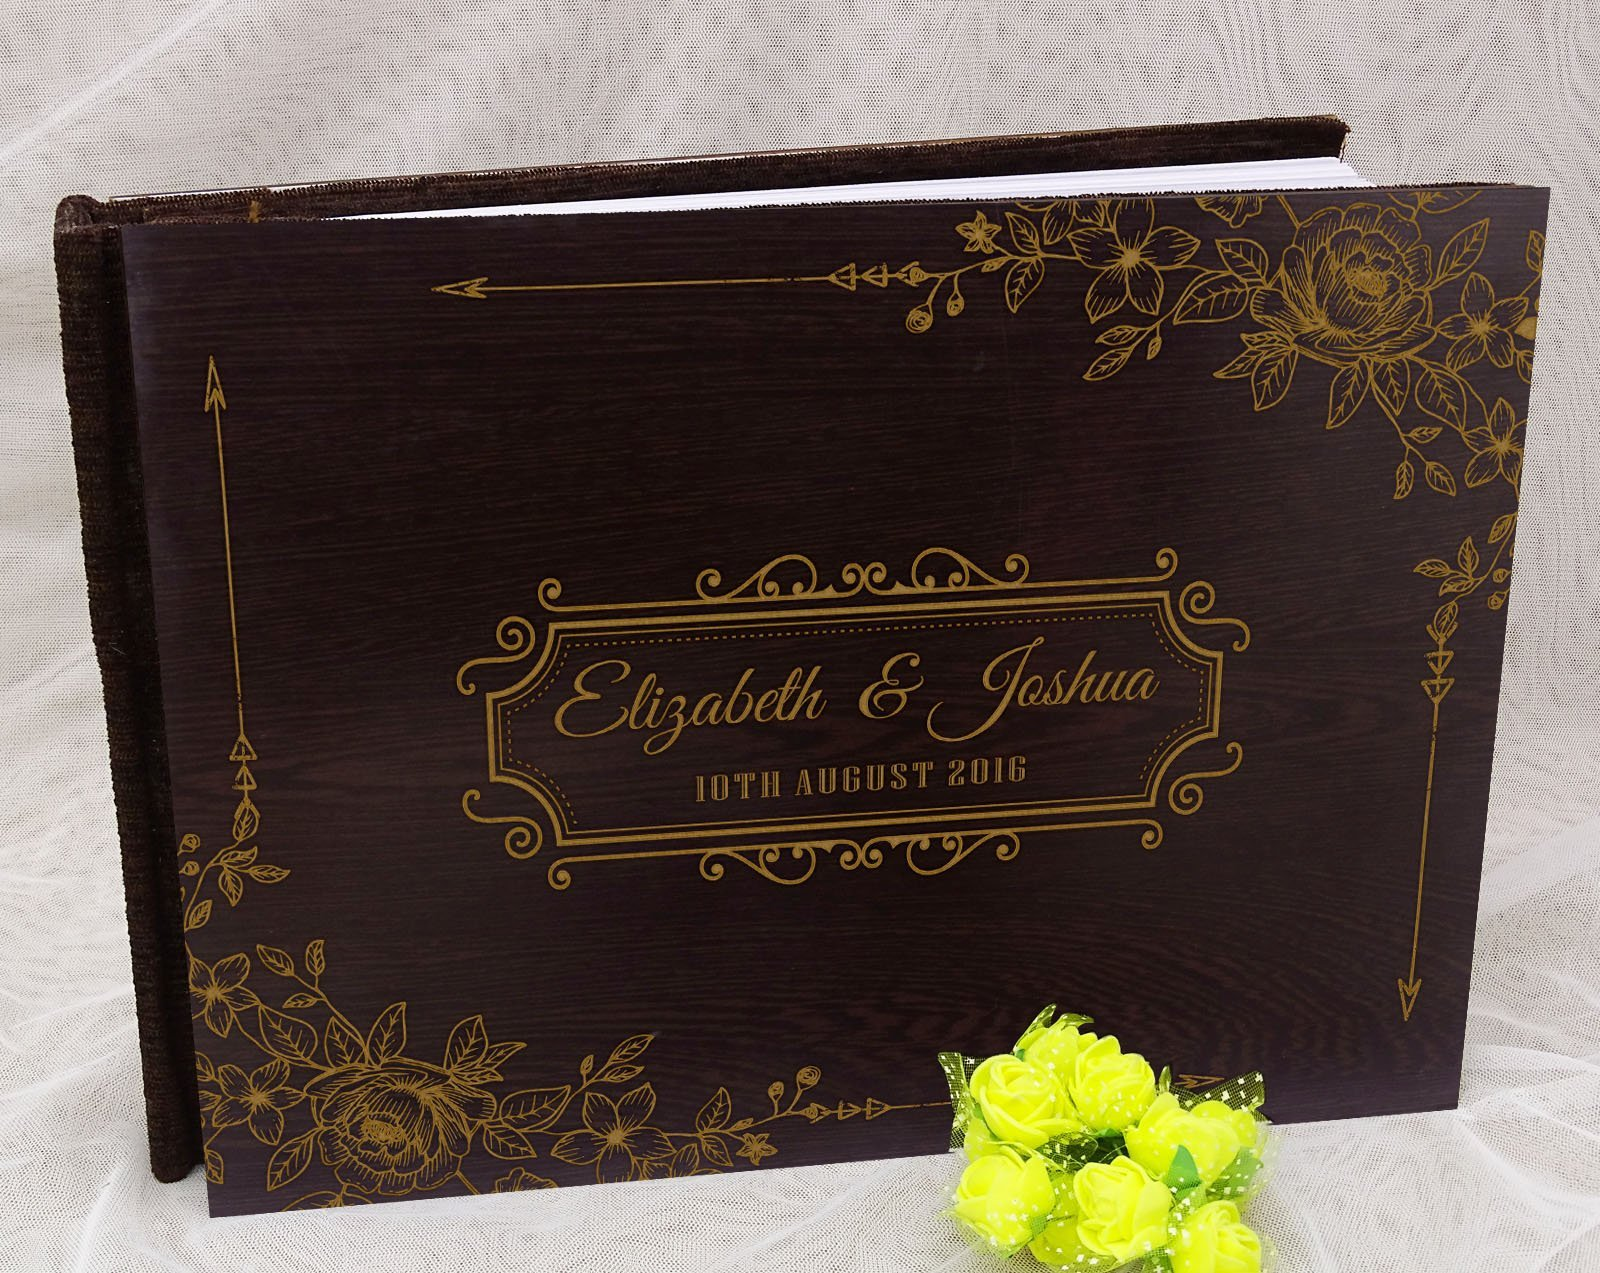 Personalized Wood Wooden Floral Engraved Bride & Groom Advice Book Personalized Rustic Wedding Guest Book - 50 Pages by Darling Souvenir (Image #3)